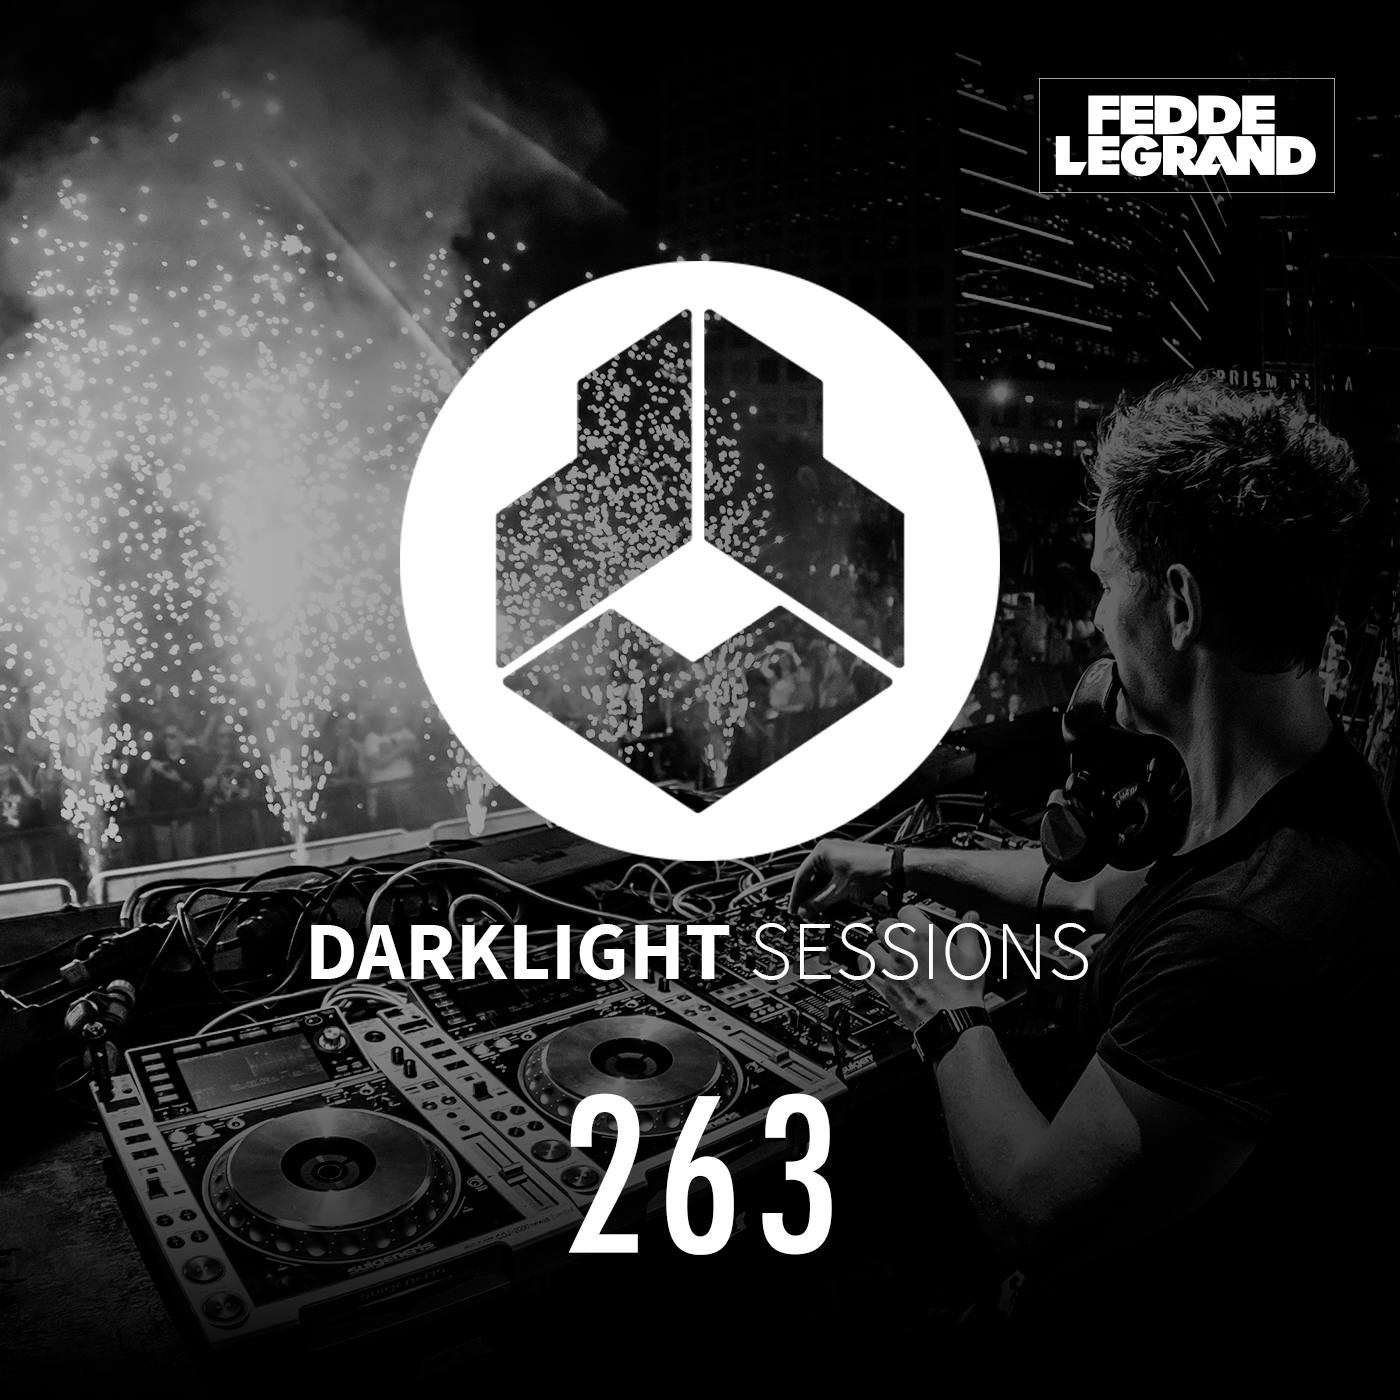 Darklight Sessions 263